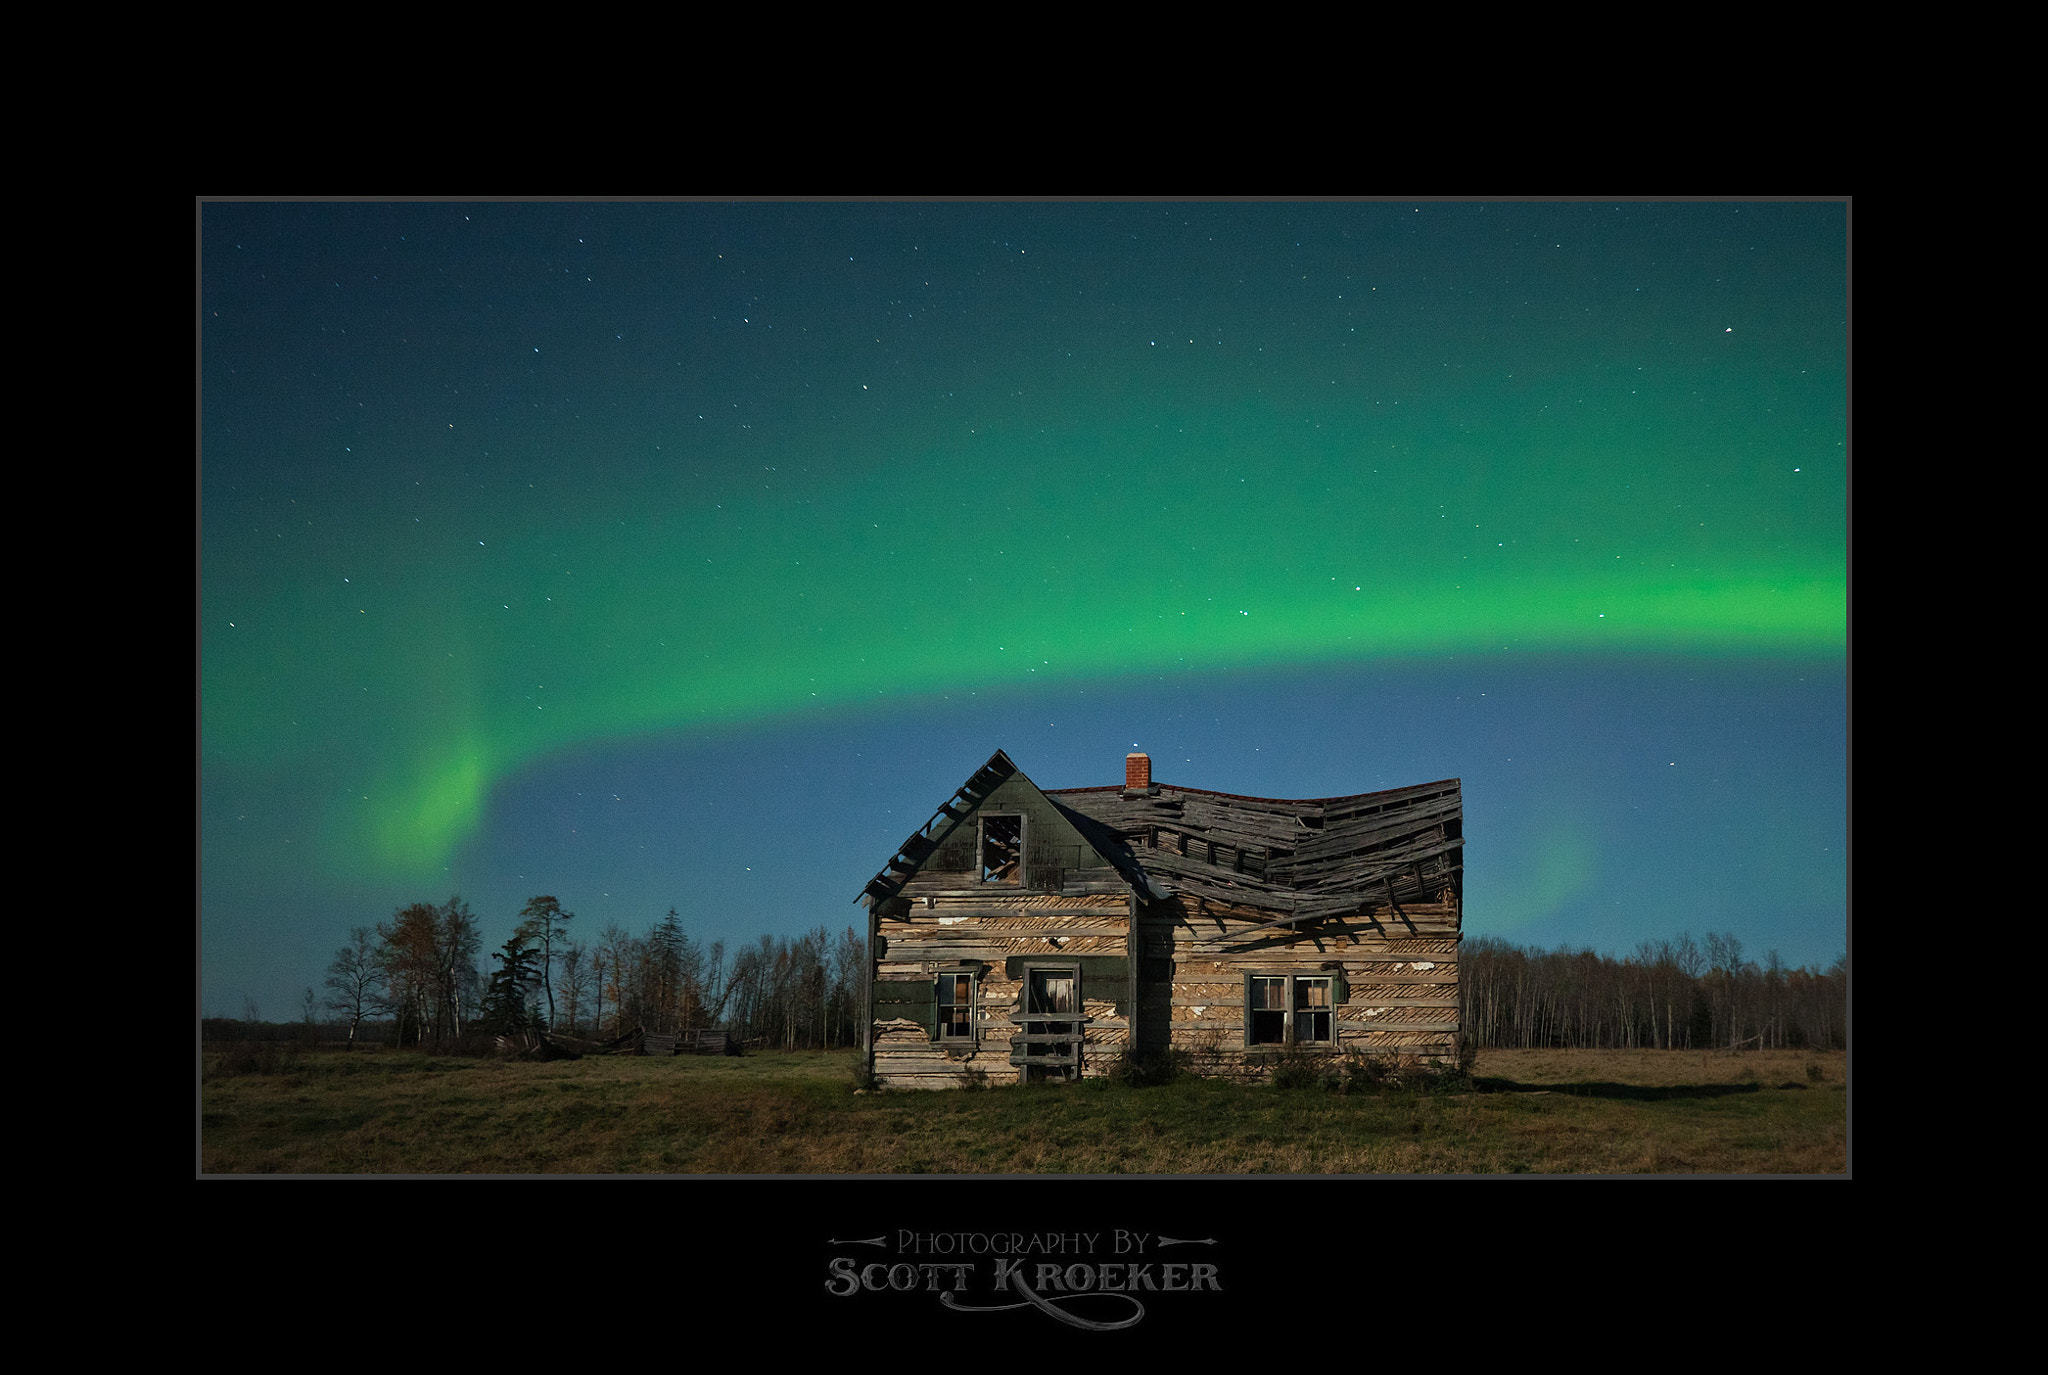 Photograph Celestial Homestead II by Scott Kroeker on 500px